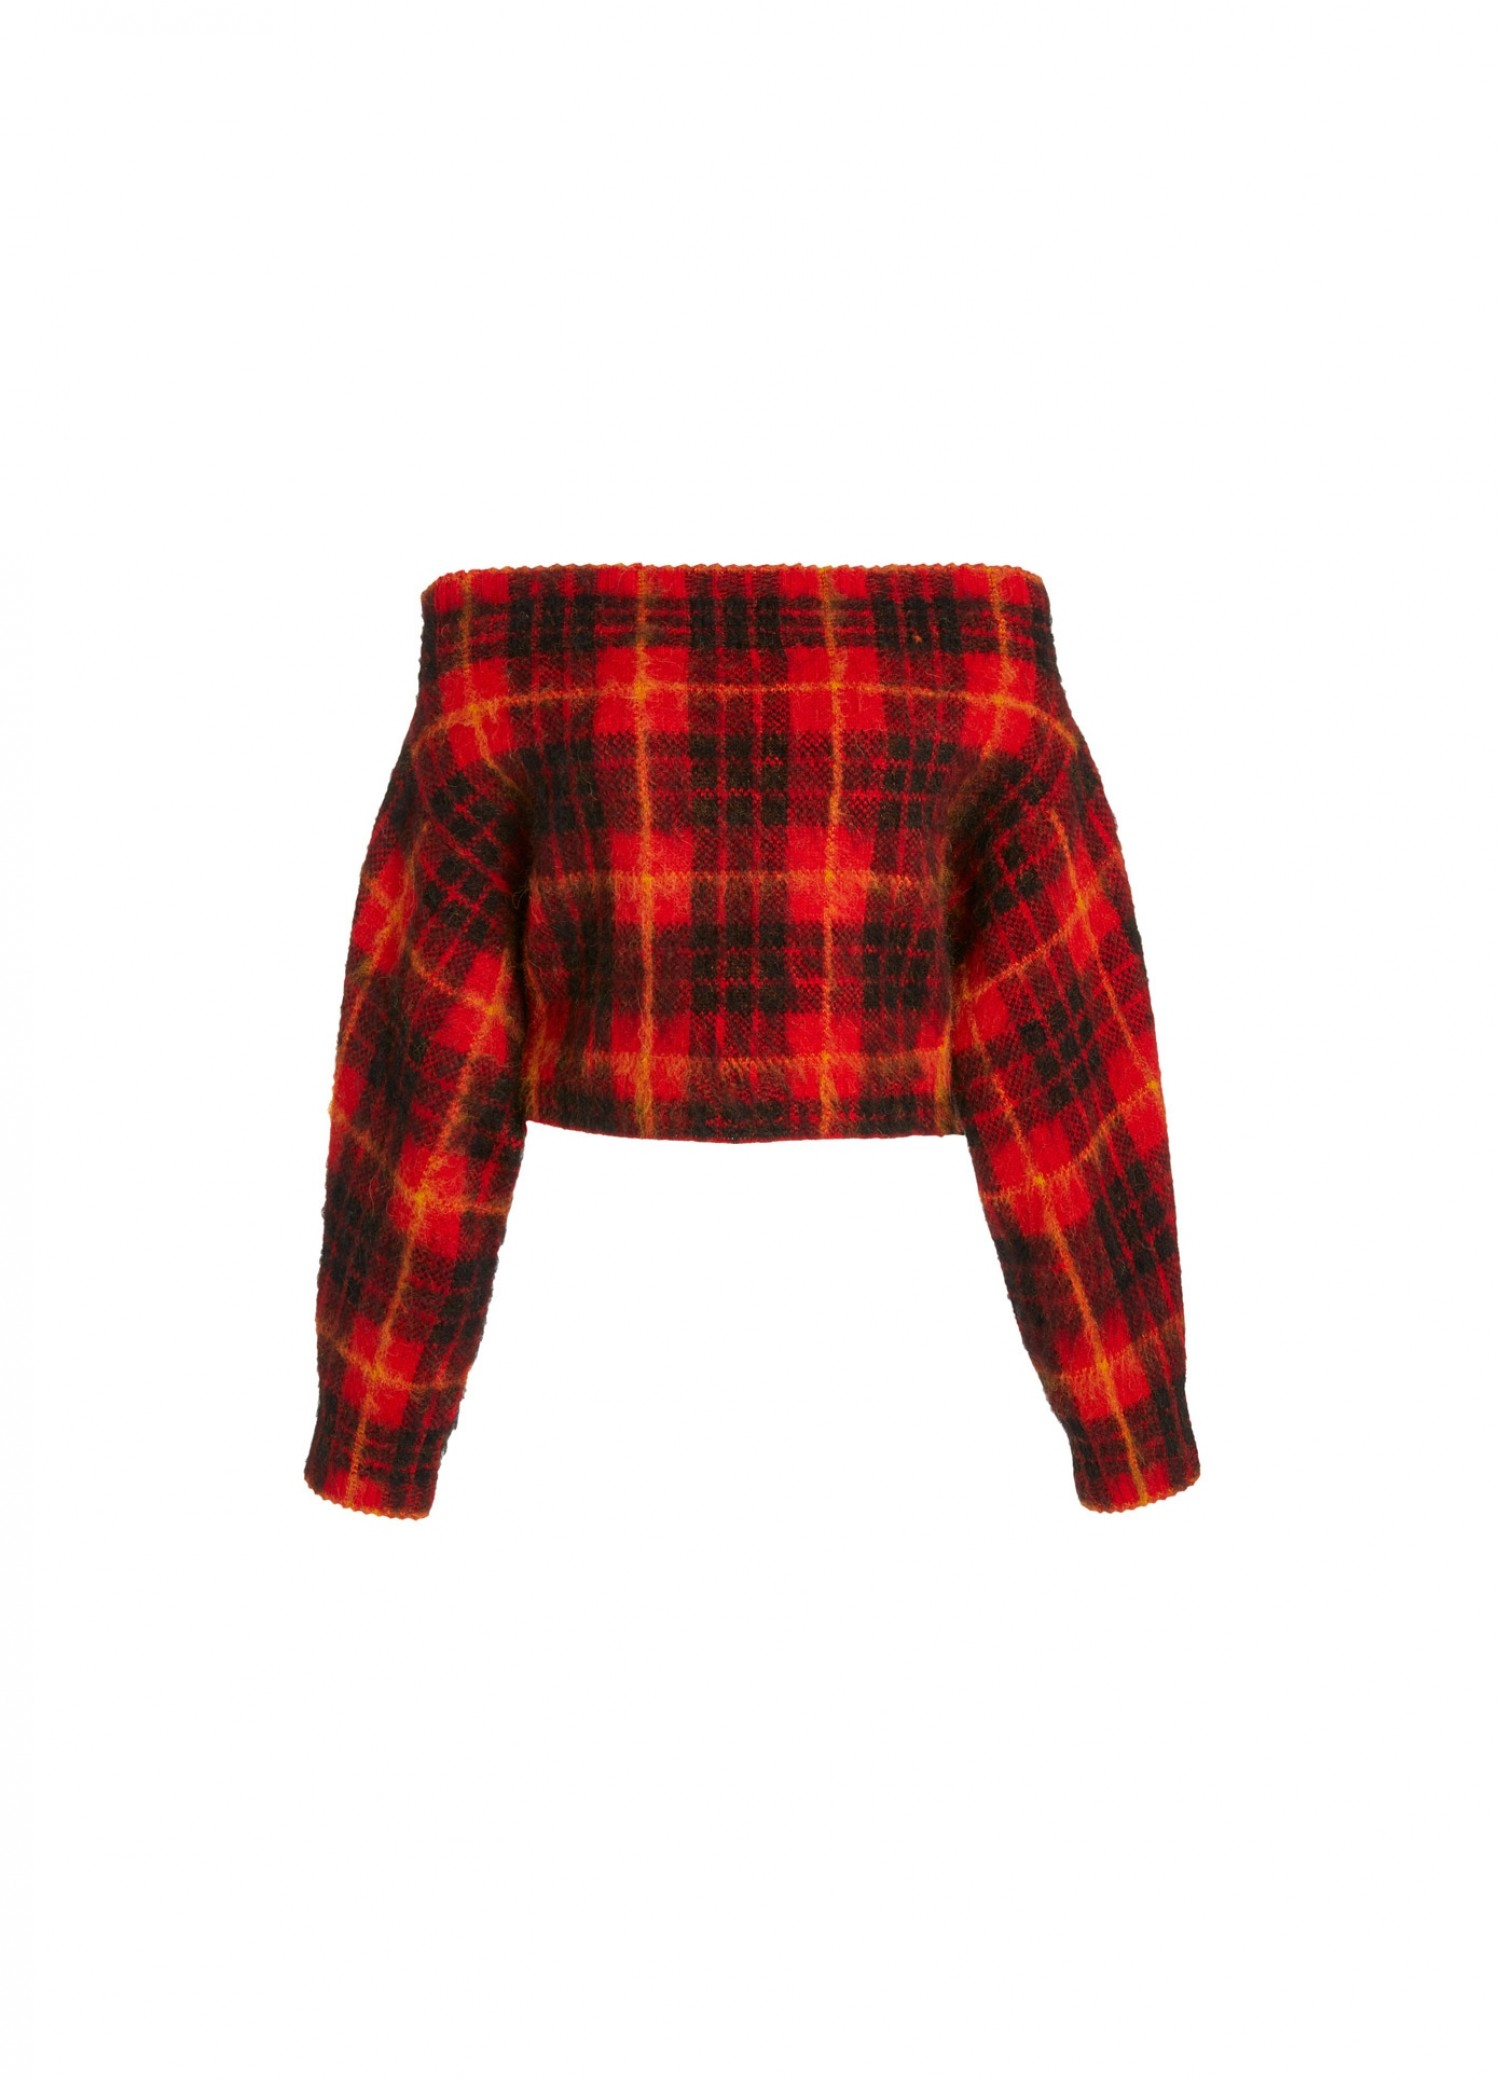 MONSE Plaid Off the Shoulder Mohair Sweater in Scarlet Plaid Multi Flat Front